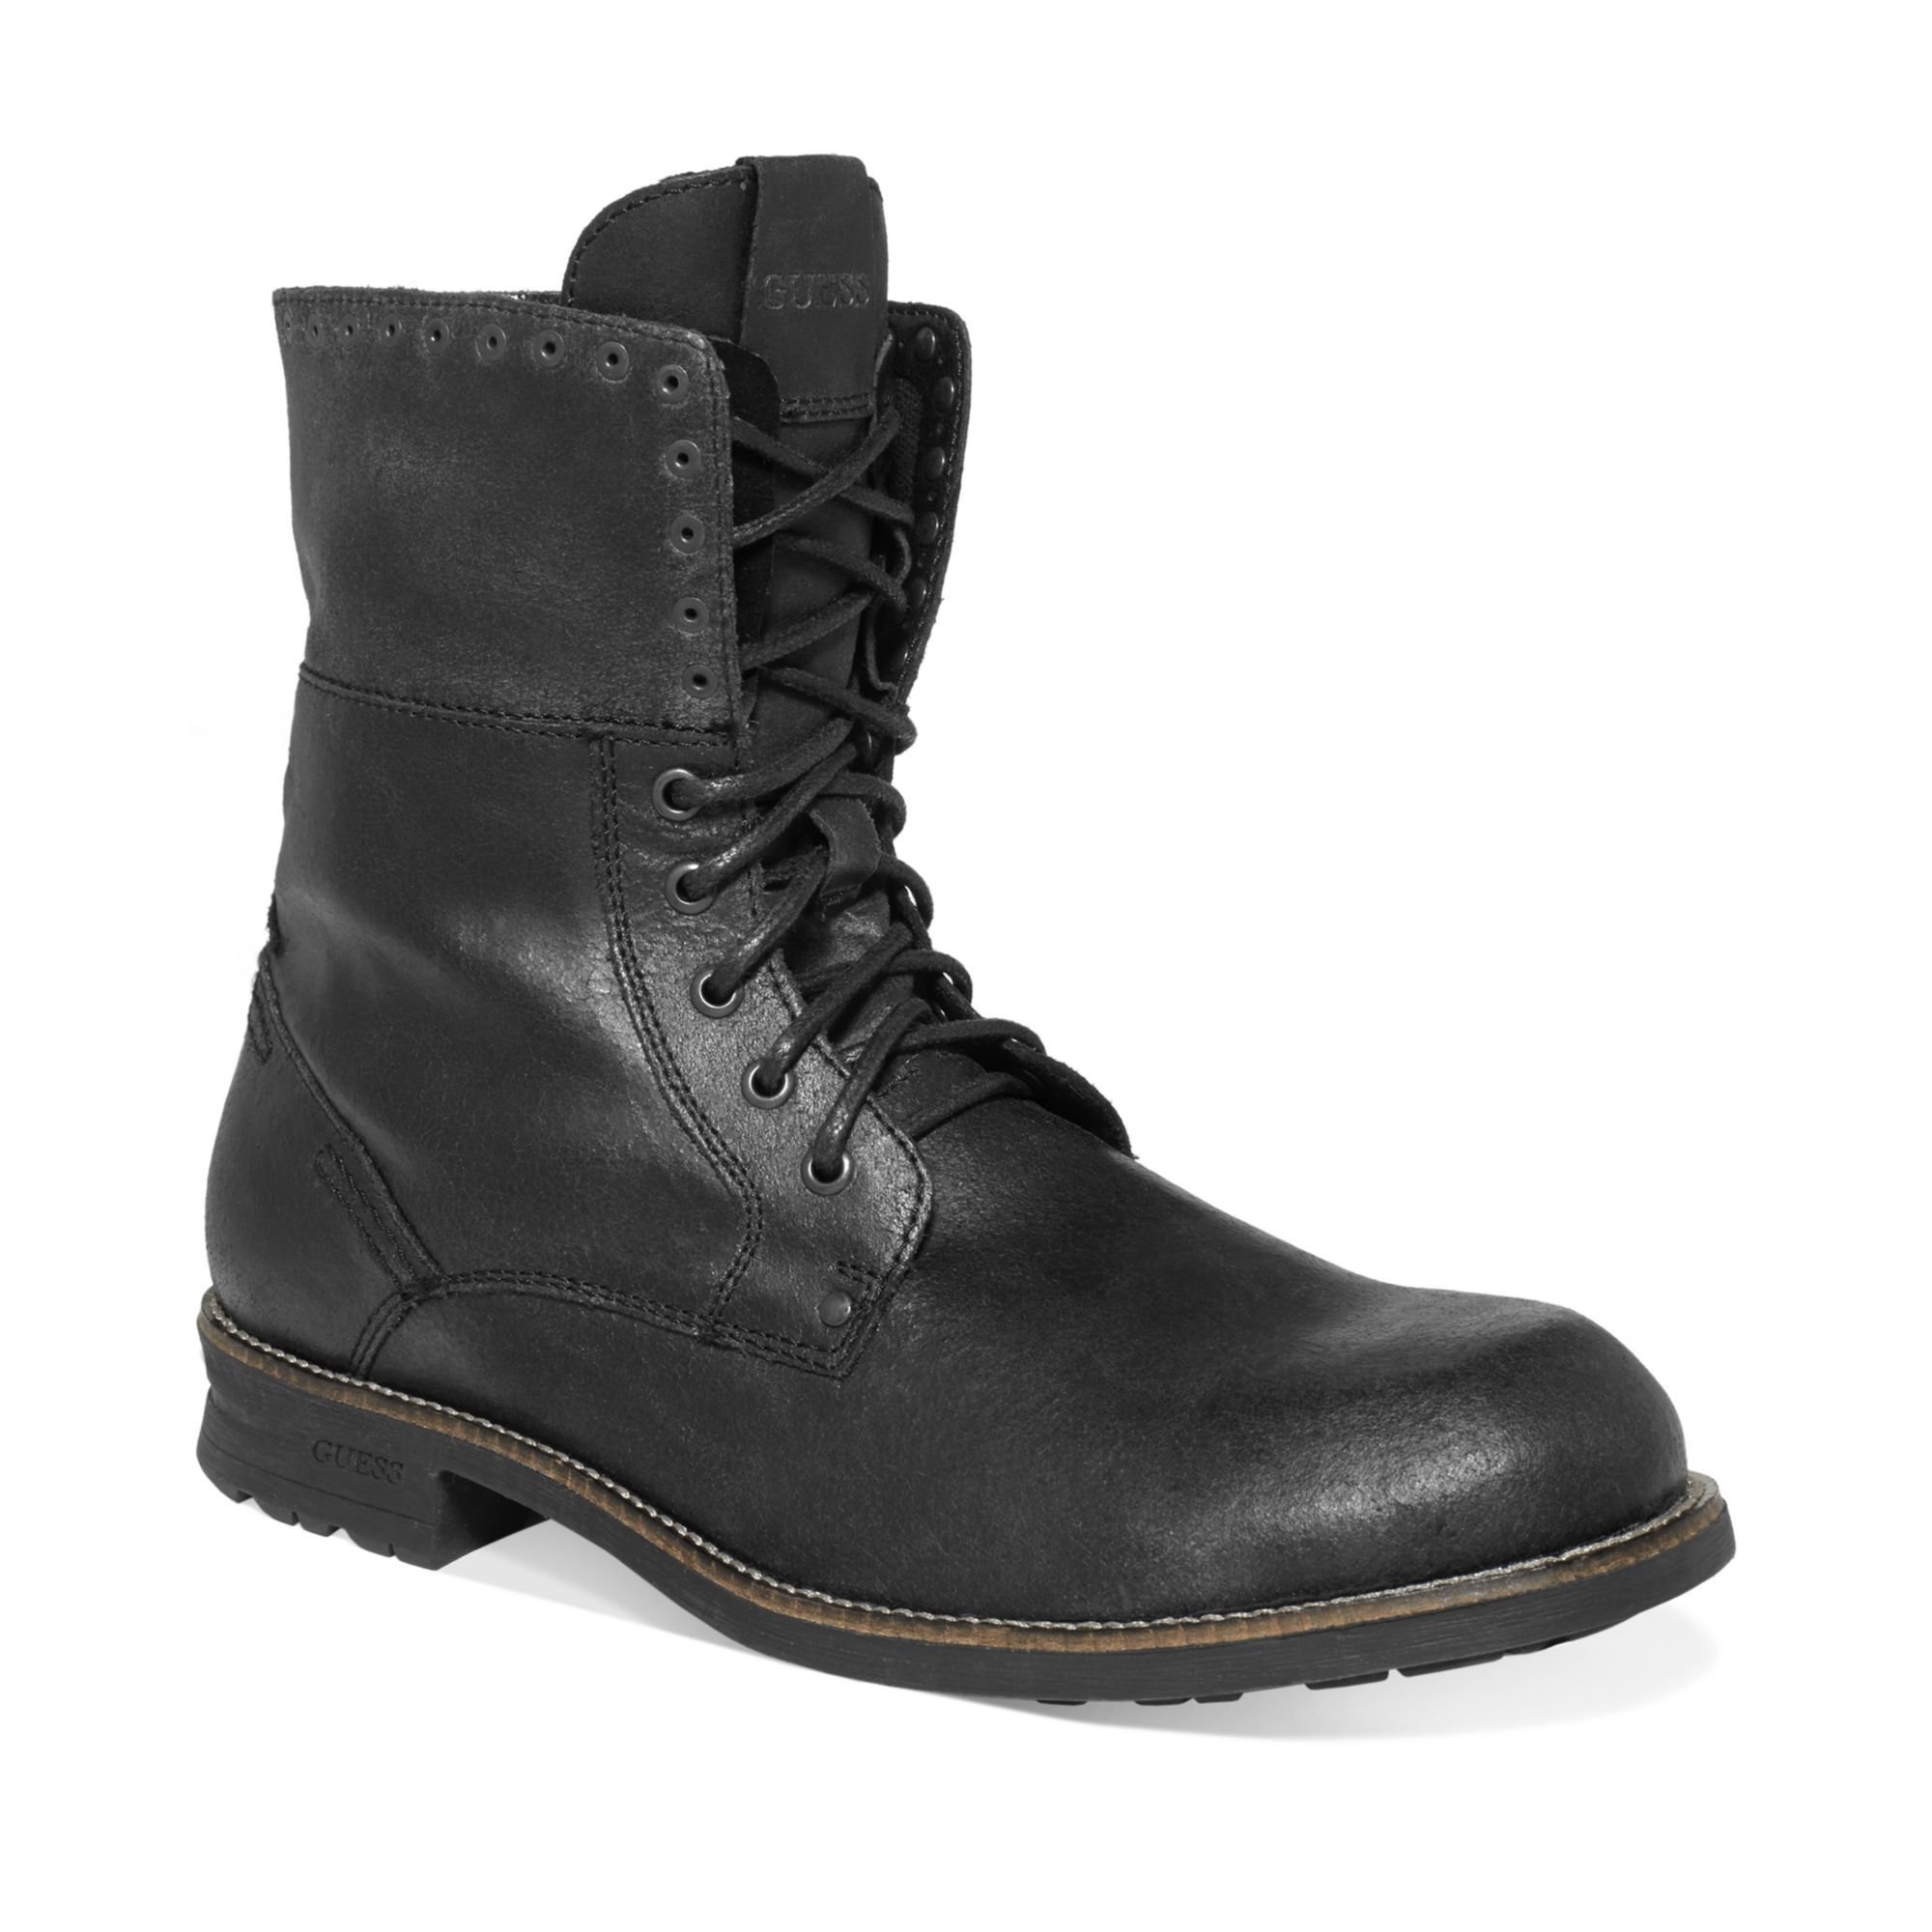 Men S Boots: Guess Mens Shoes Differ Boots In Black For Men